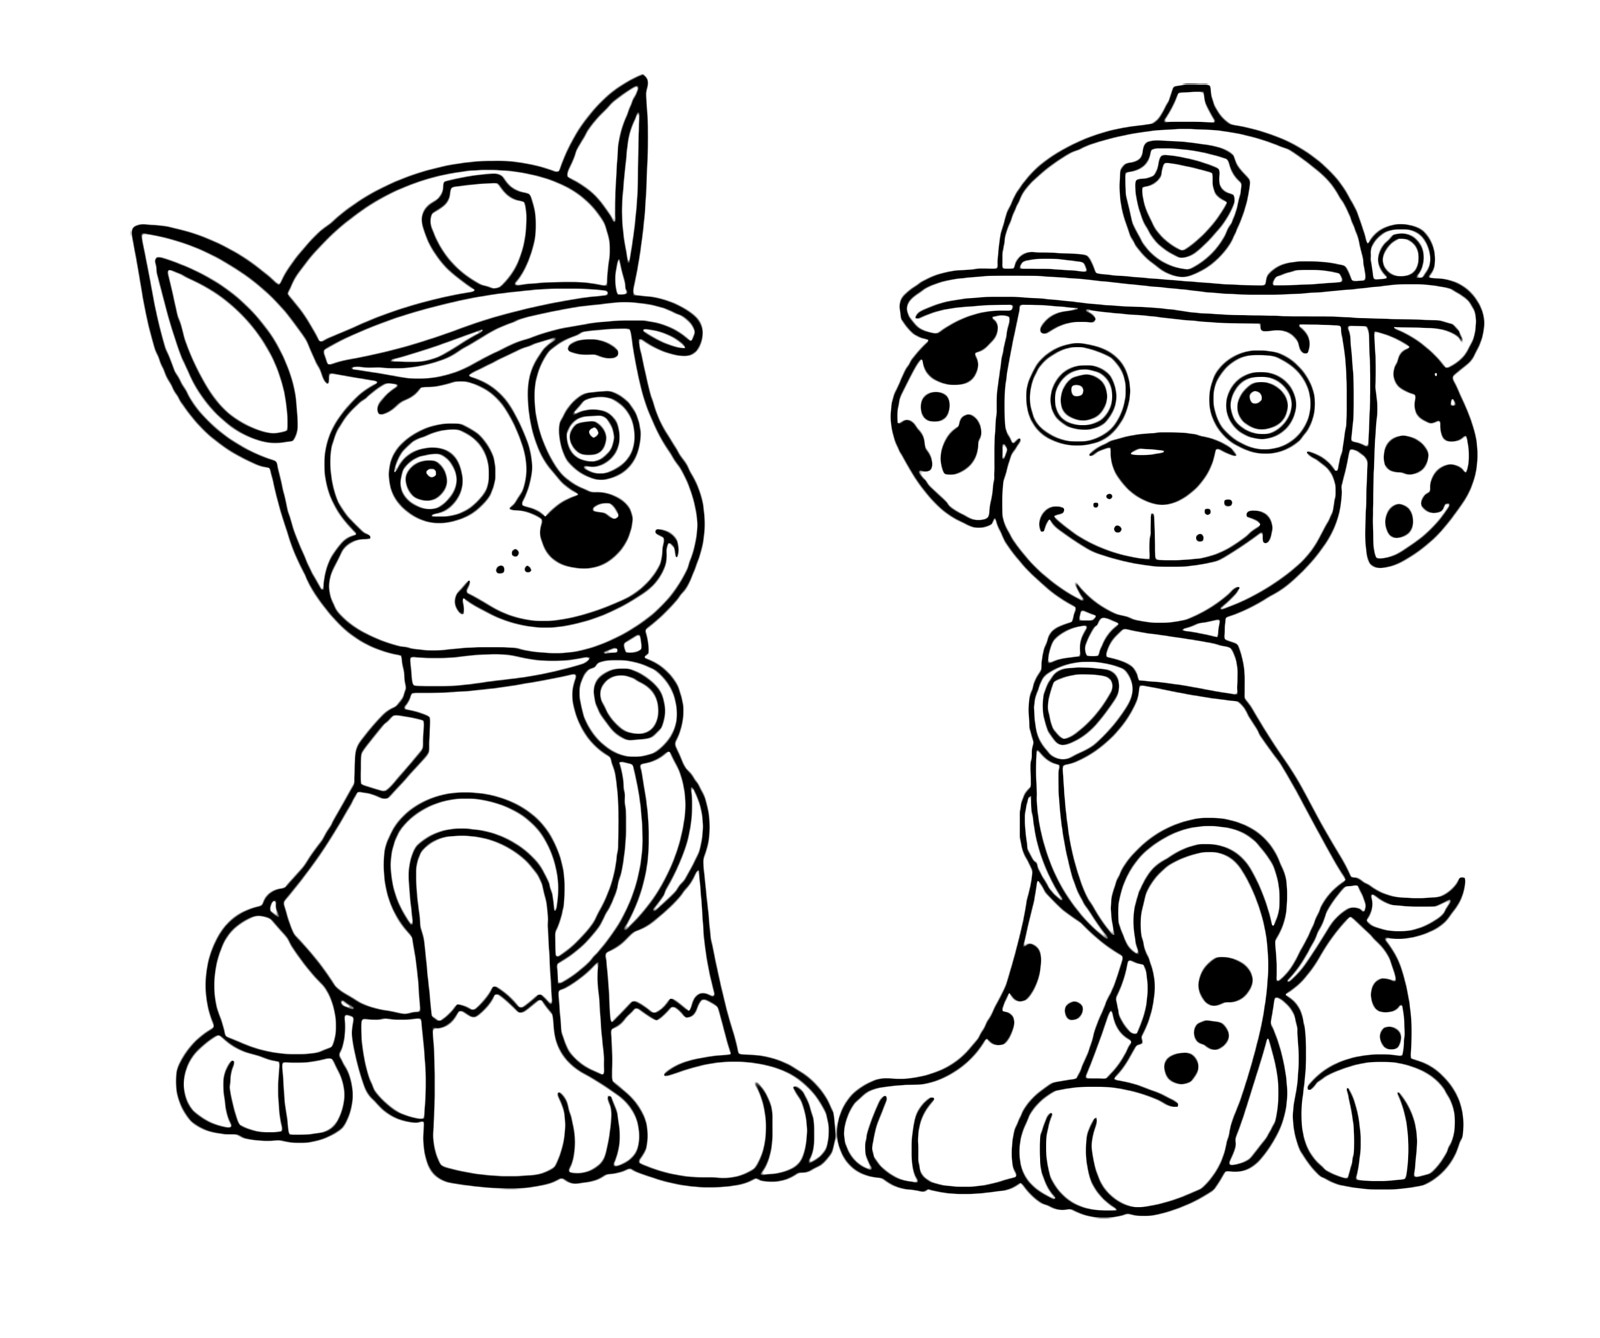 Paw Patrol Coloring Pages Marshall Coloring Pages Coloring Ideas Paw Patrol Pages Marshall Lovely